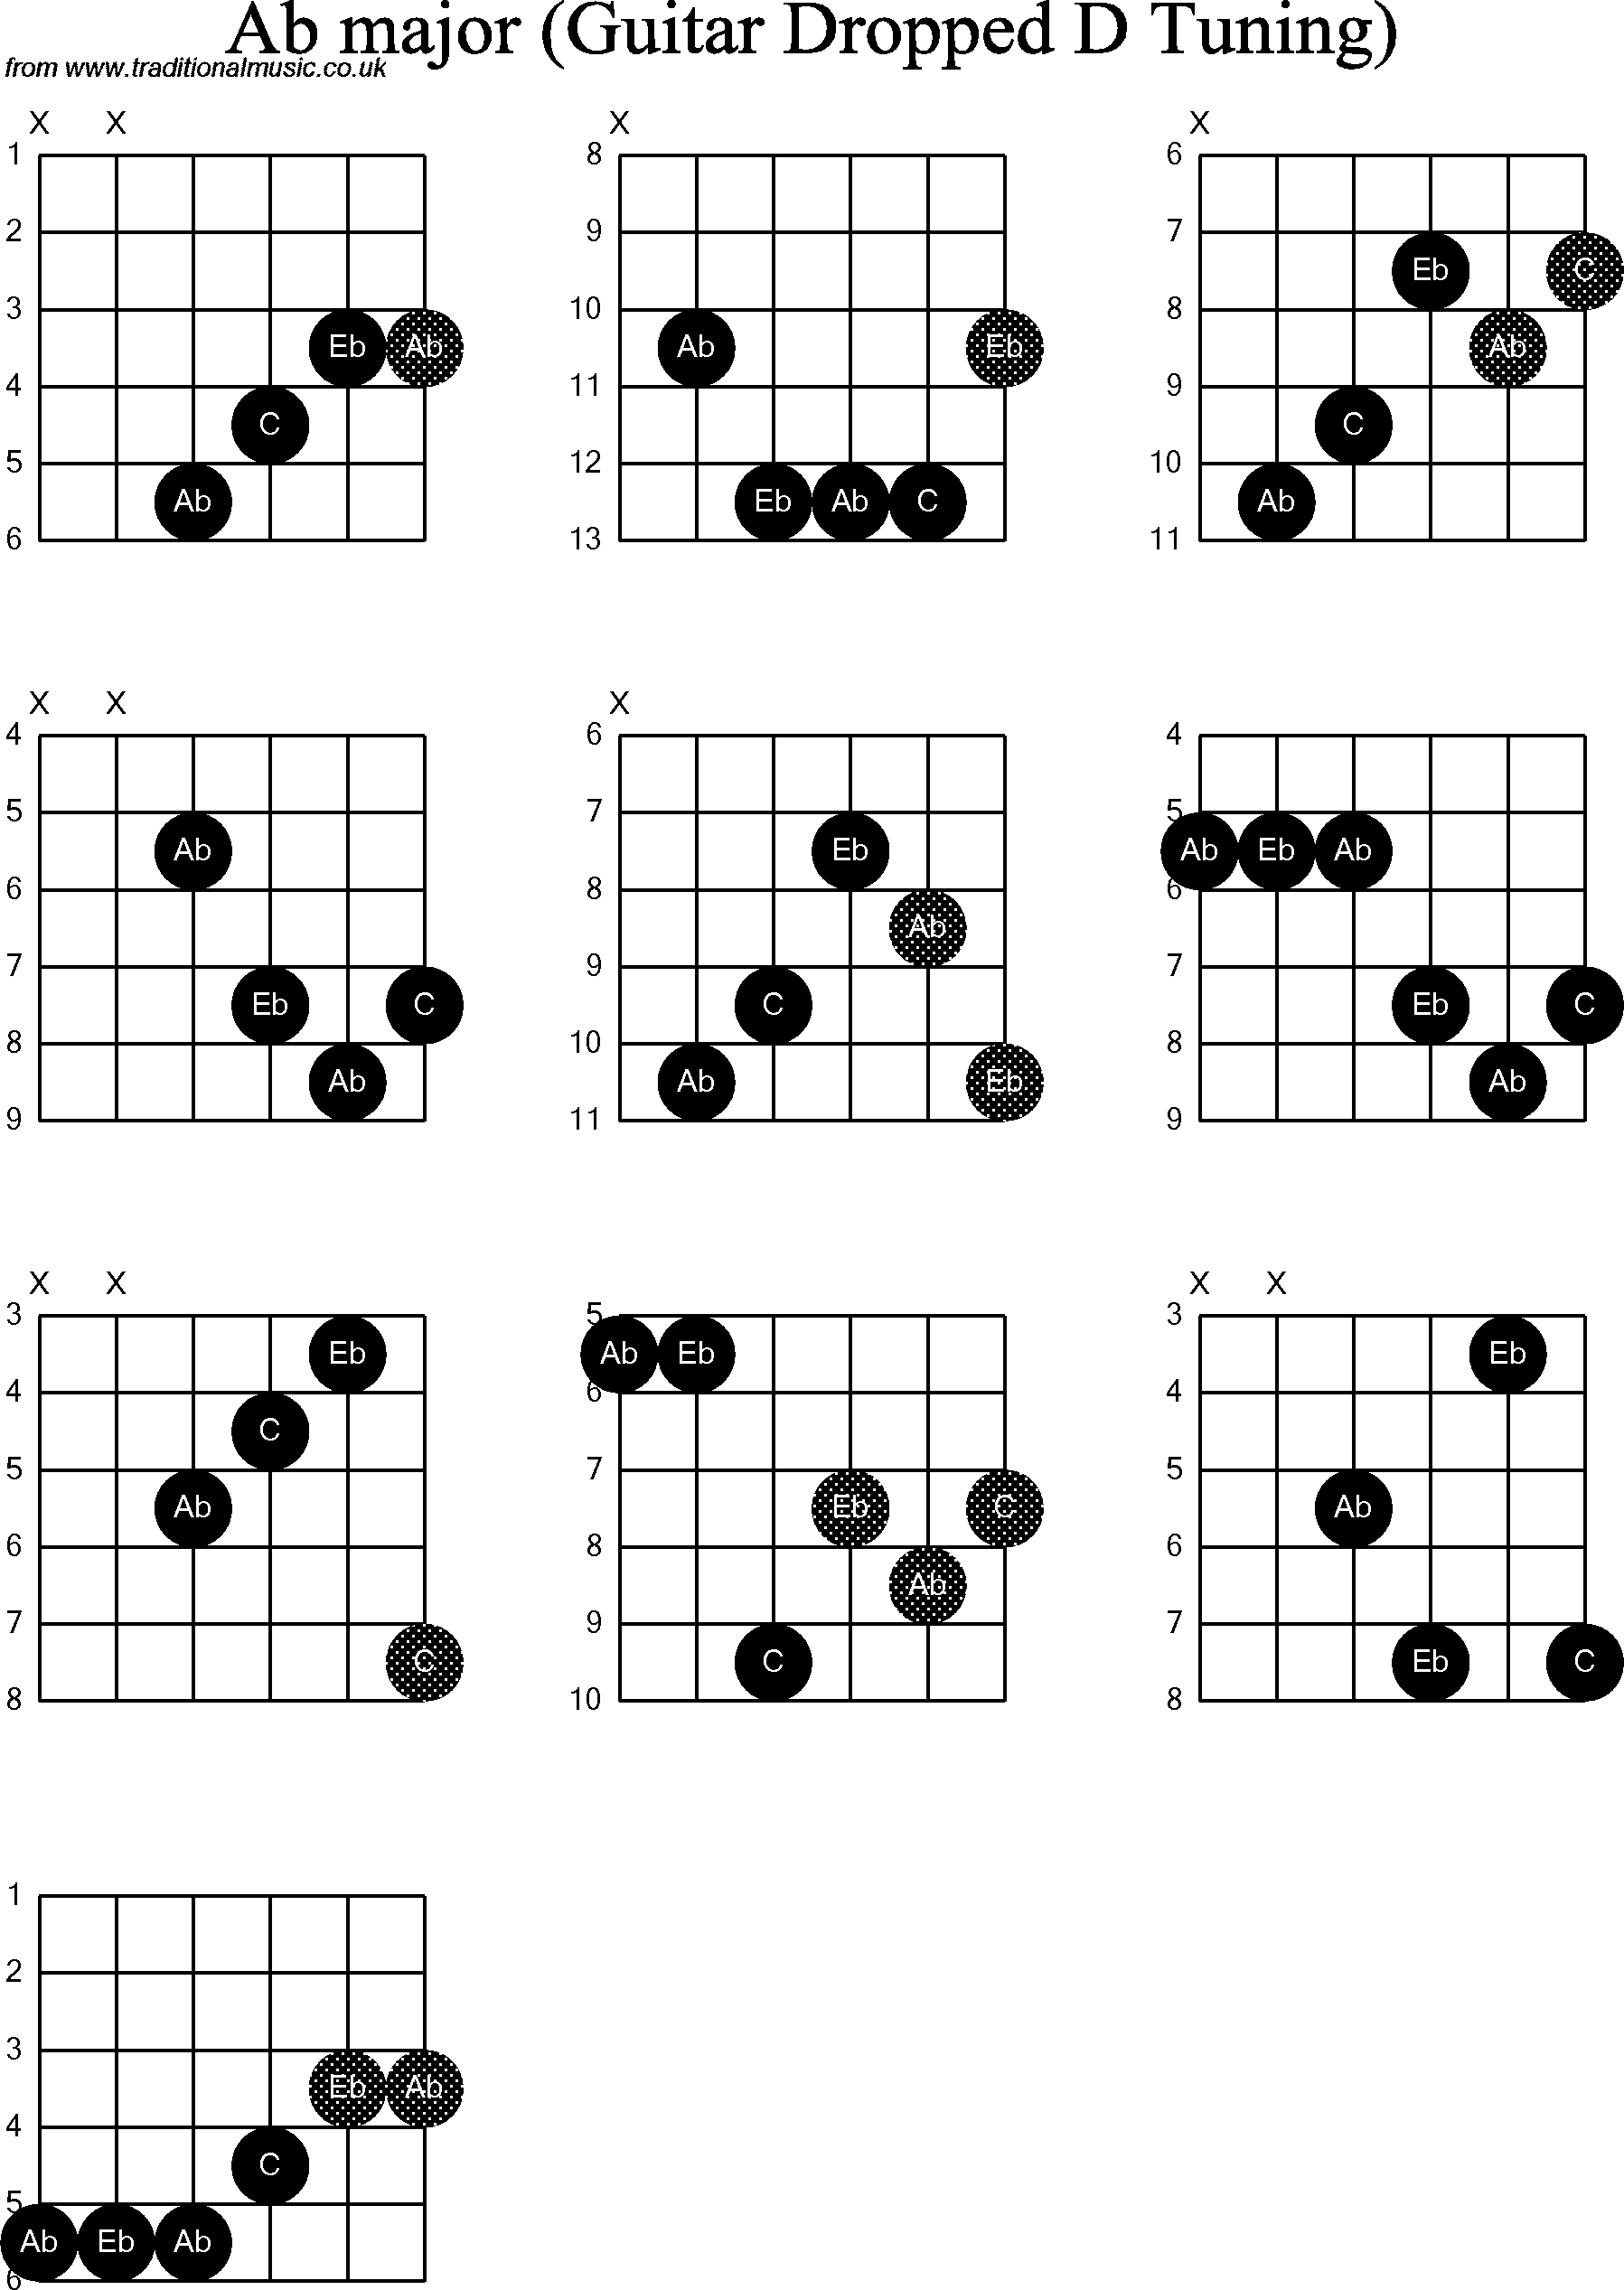 Chord Diagrams For Dropped D Guitardadgbe Ab